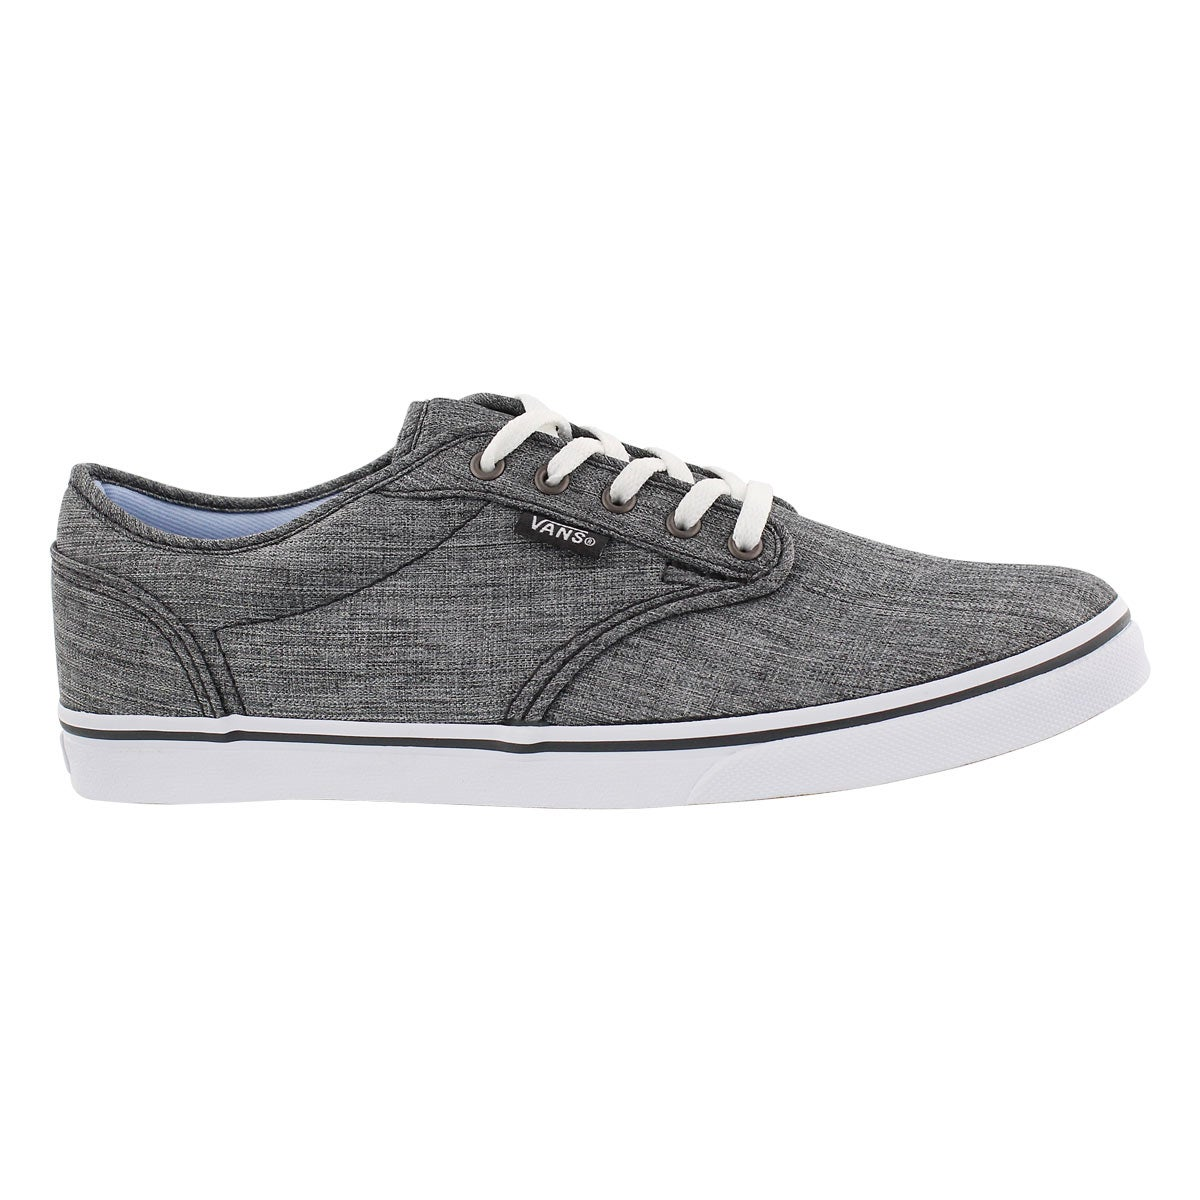 Lds Atwood Low textile gry laceup snkr